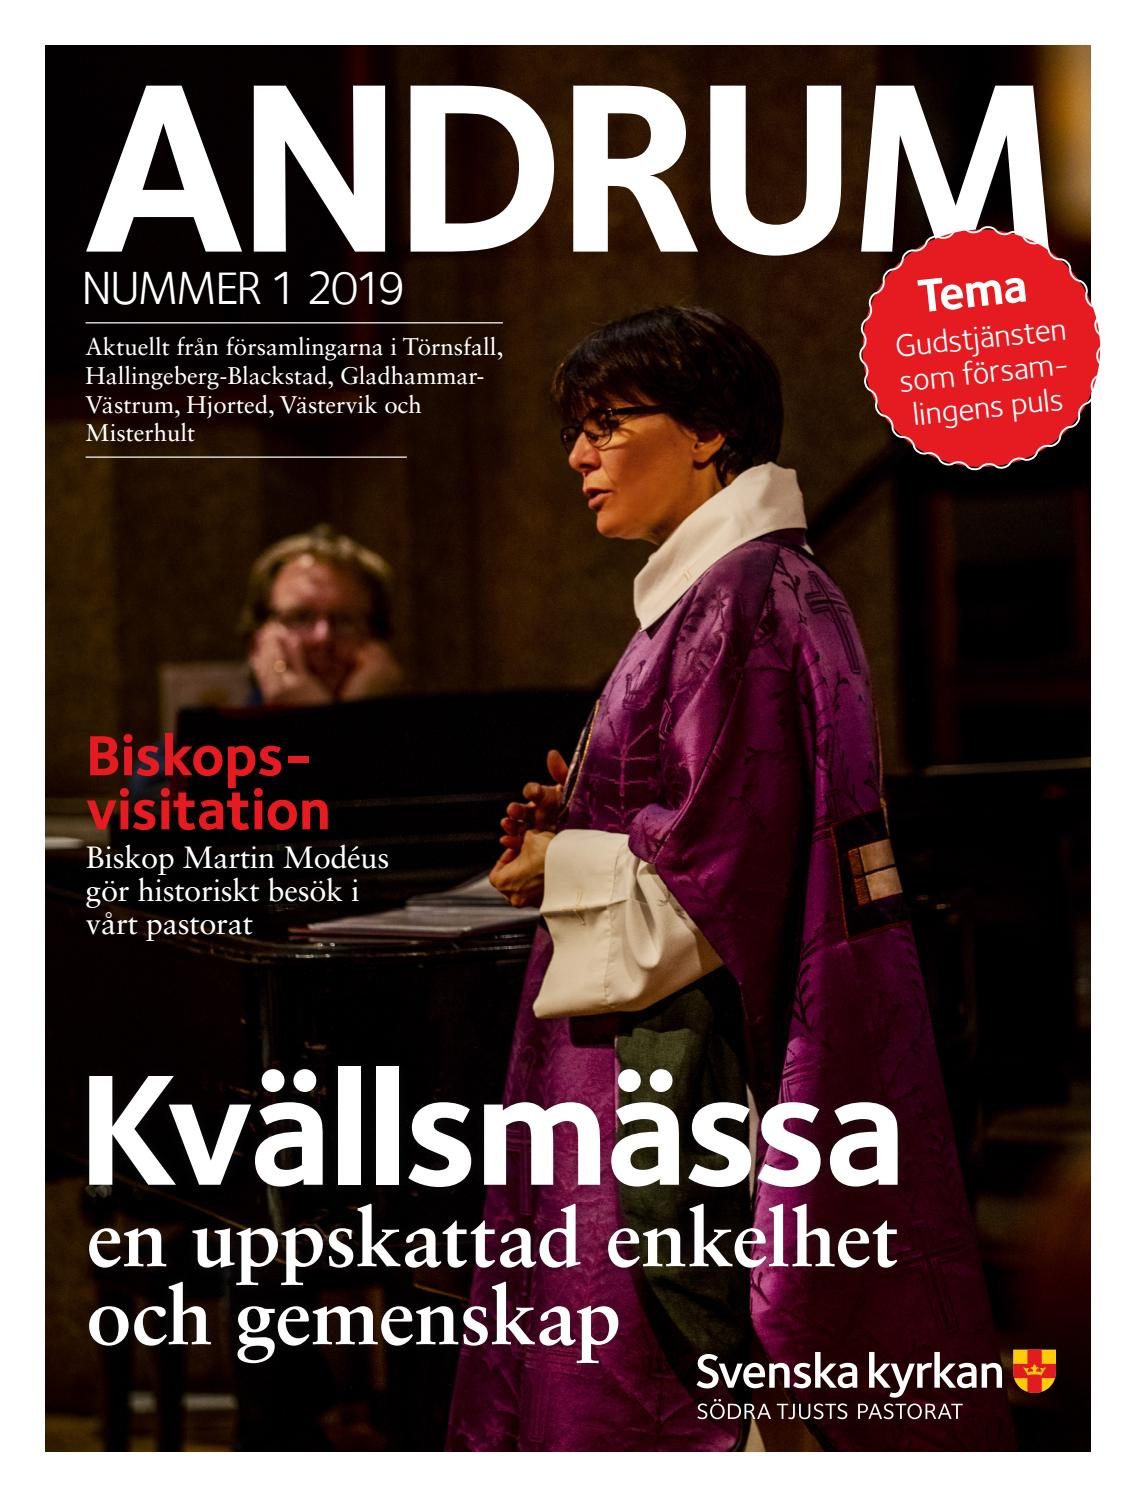 Andrum 2 2018 by Thomas Sjstrm - issuu